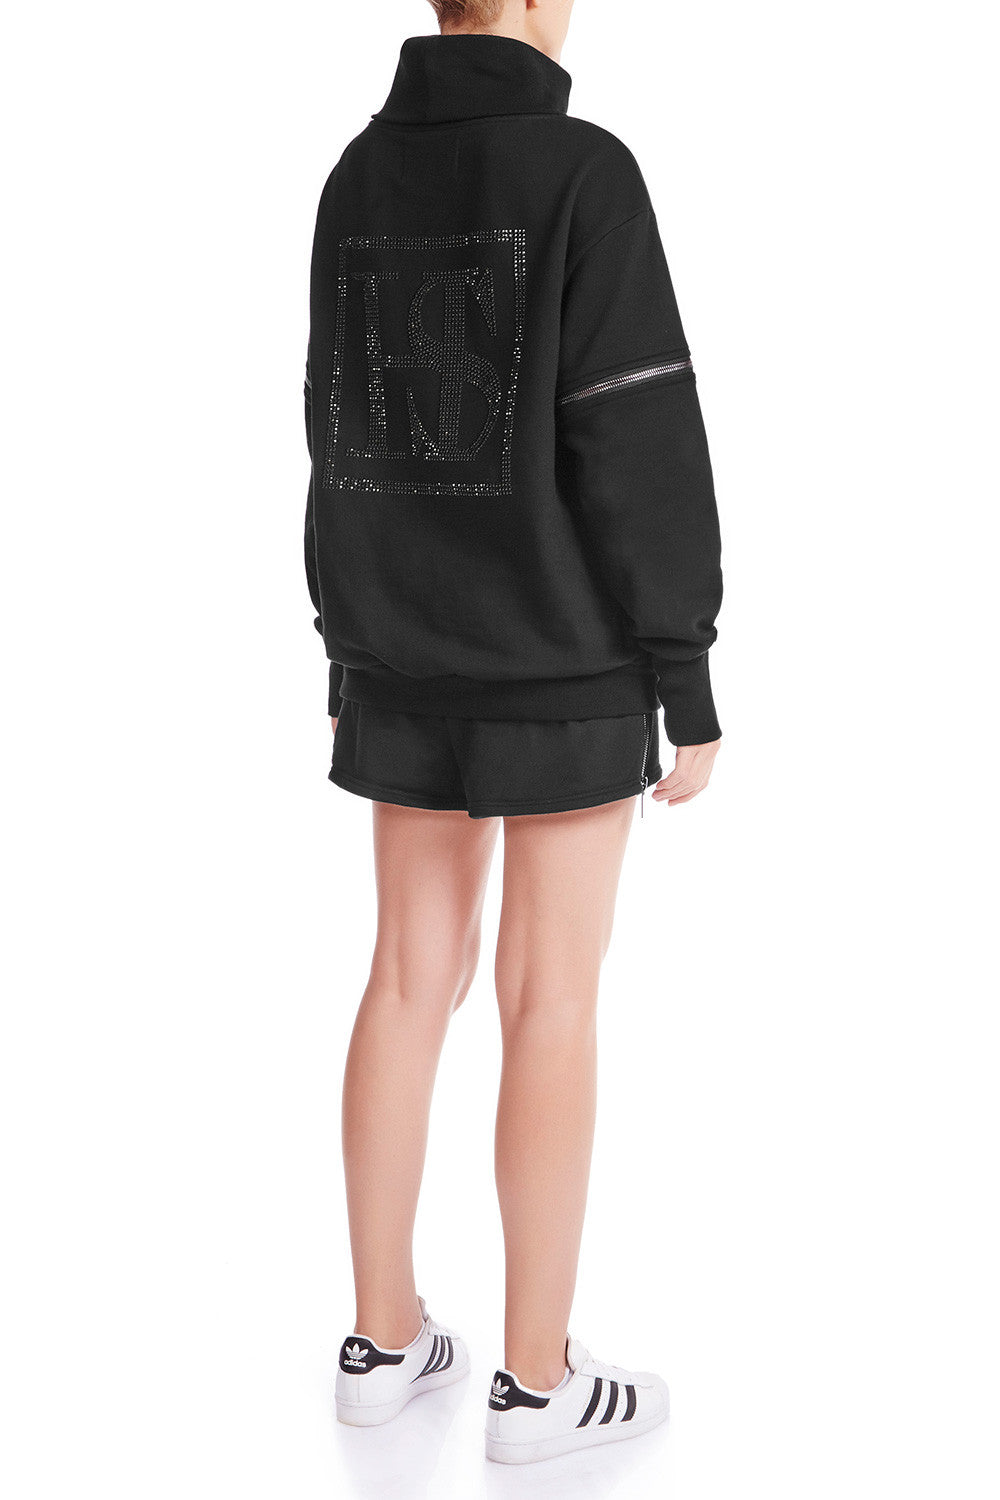 KRYSTALLE Statement Sweatshirt - EXCLUSIVE - HAUS OF SONG